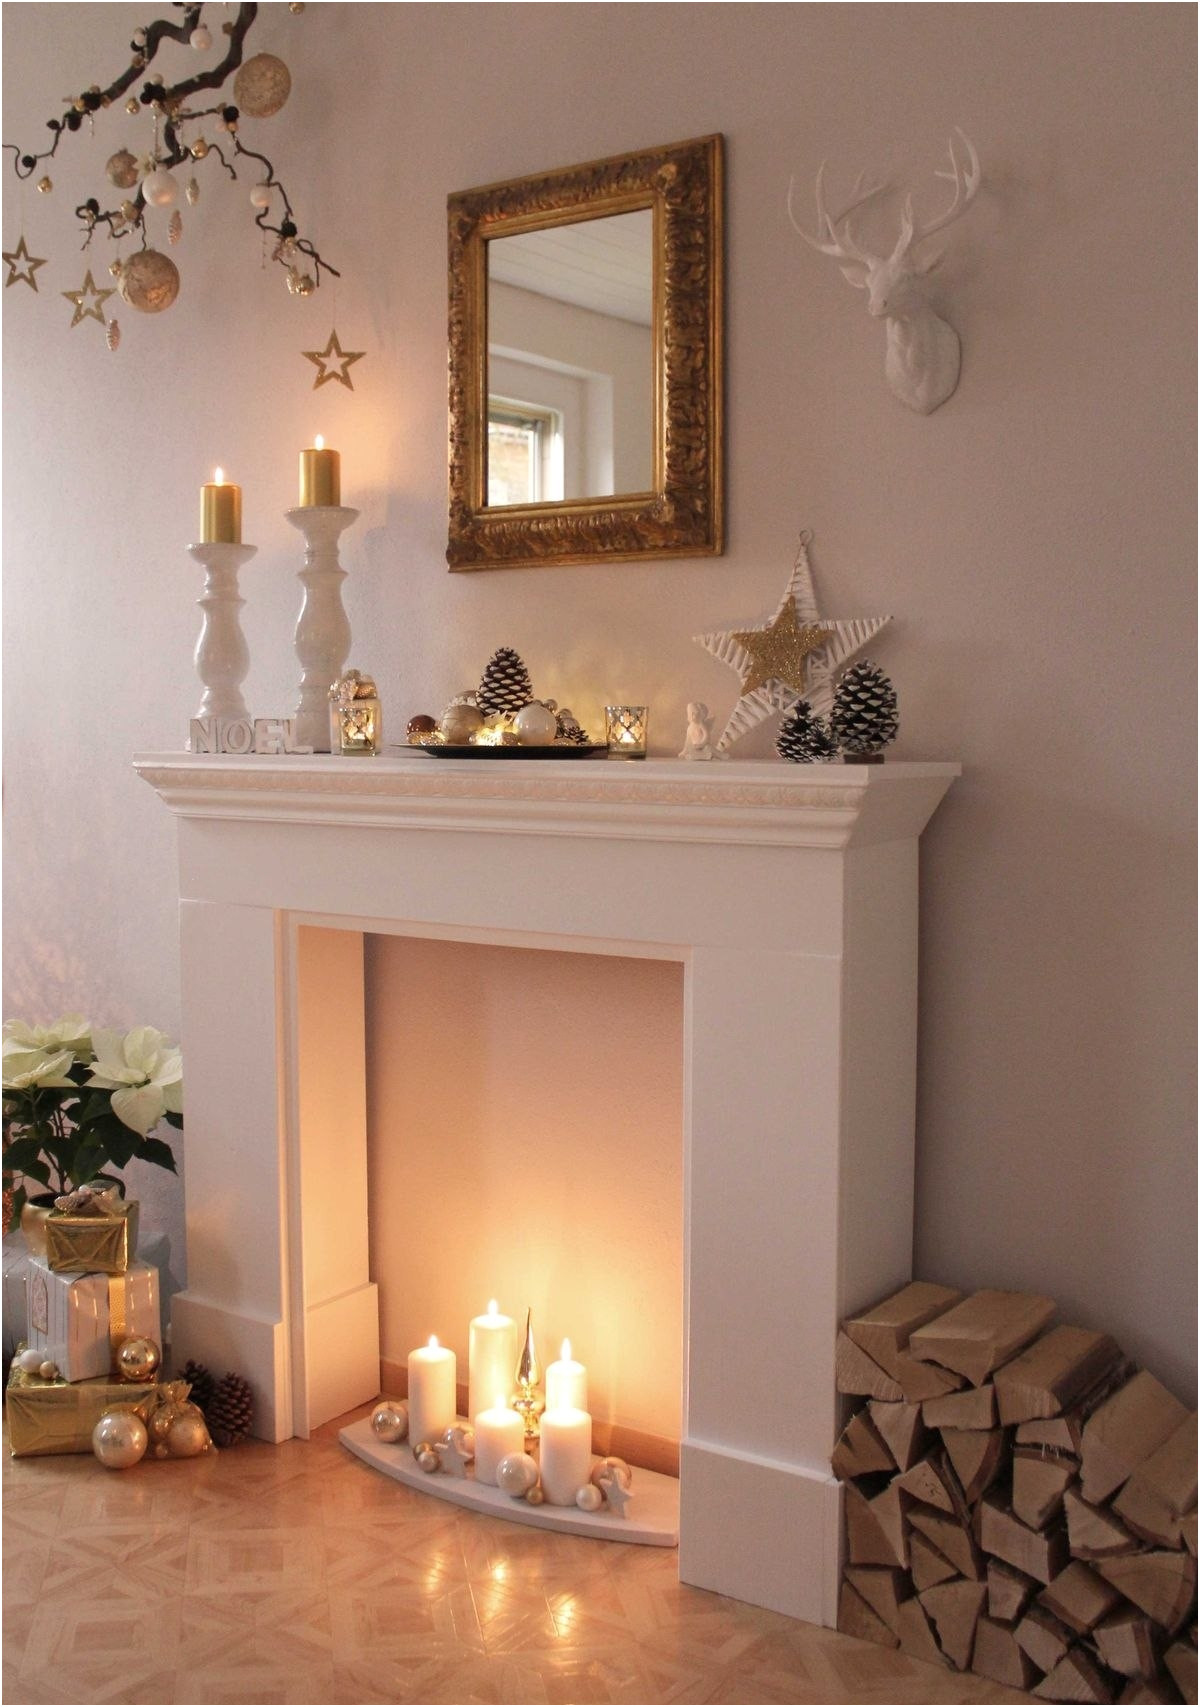 Fireplace Mantel Images Inspirational White Mantel Gas Fireplace